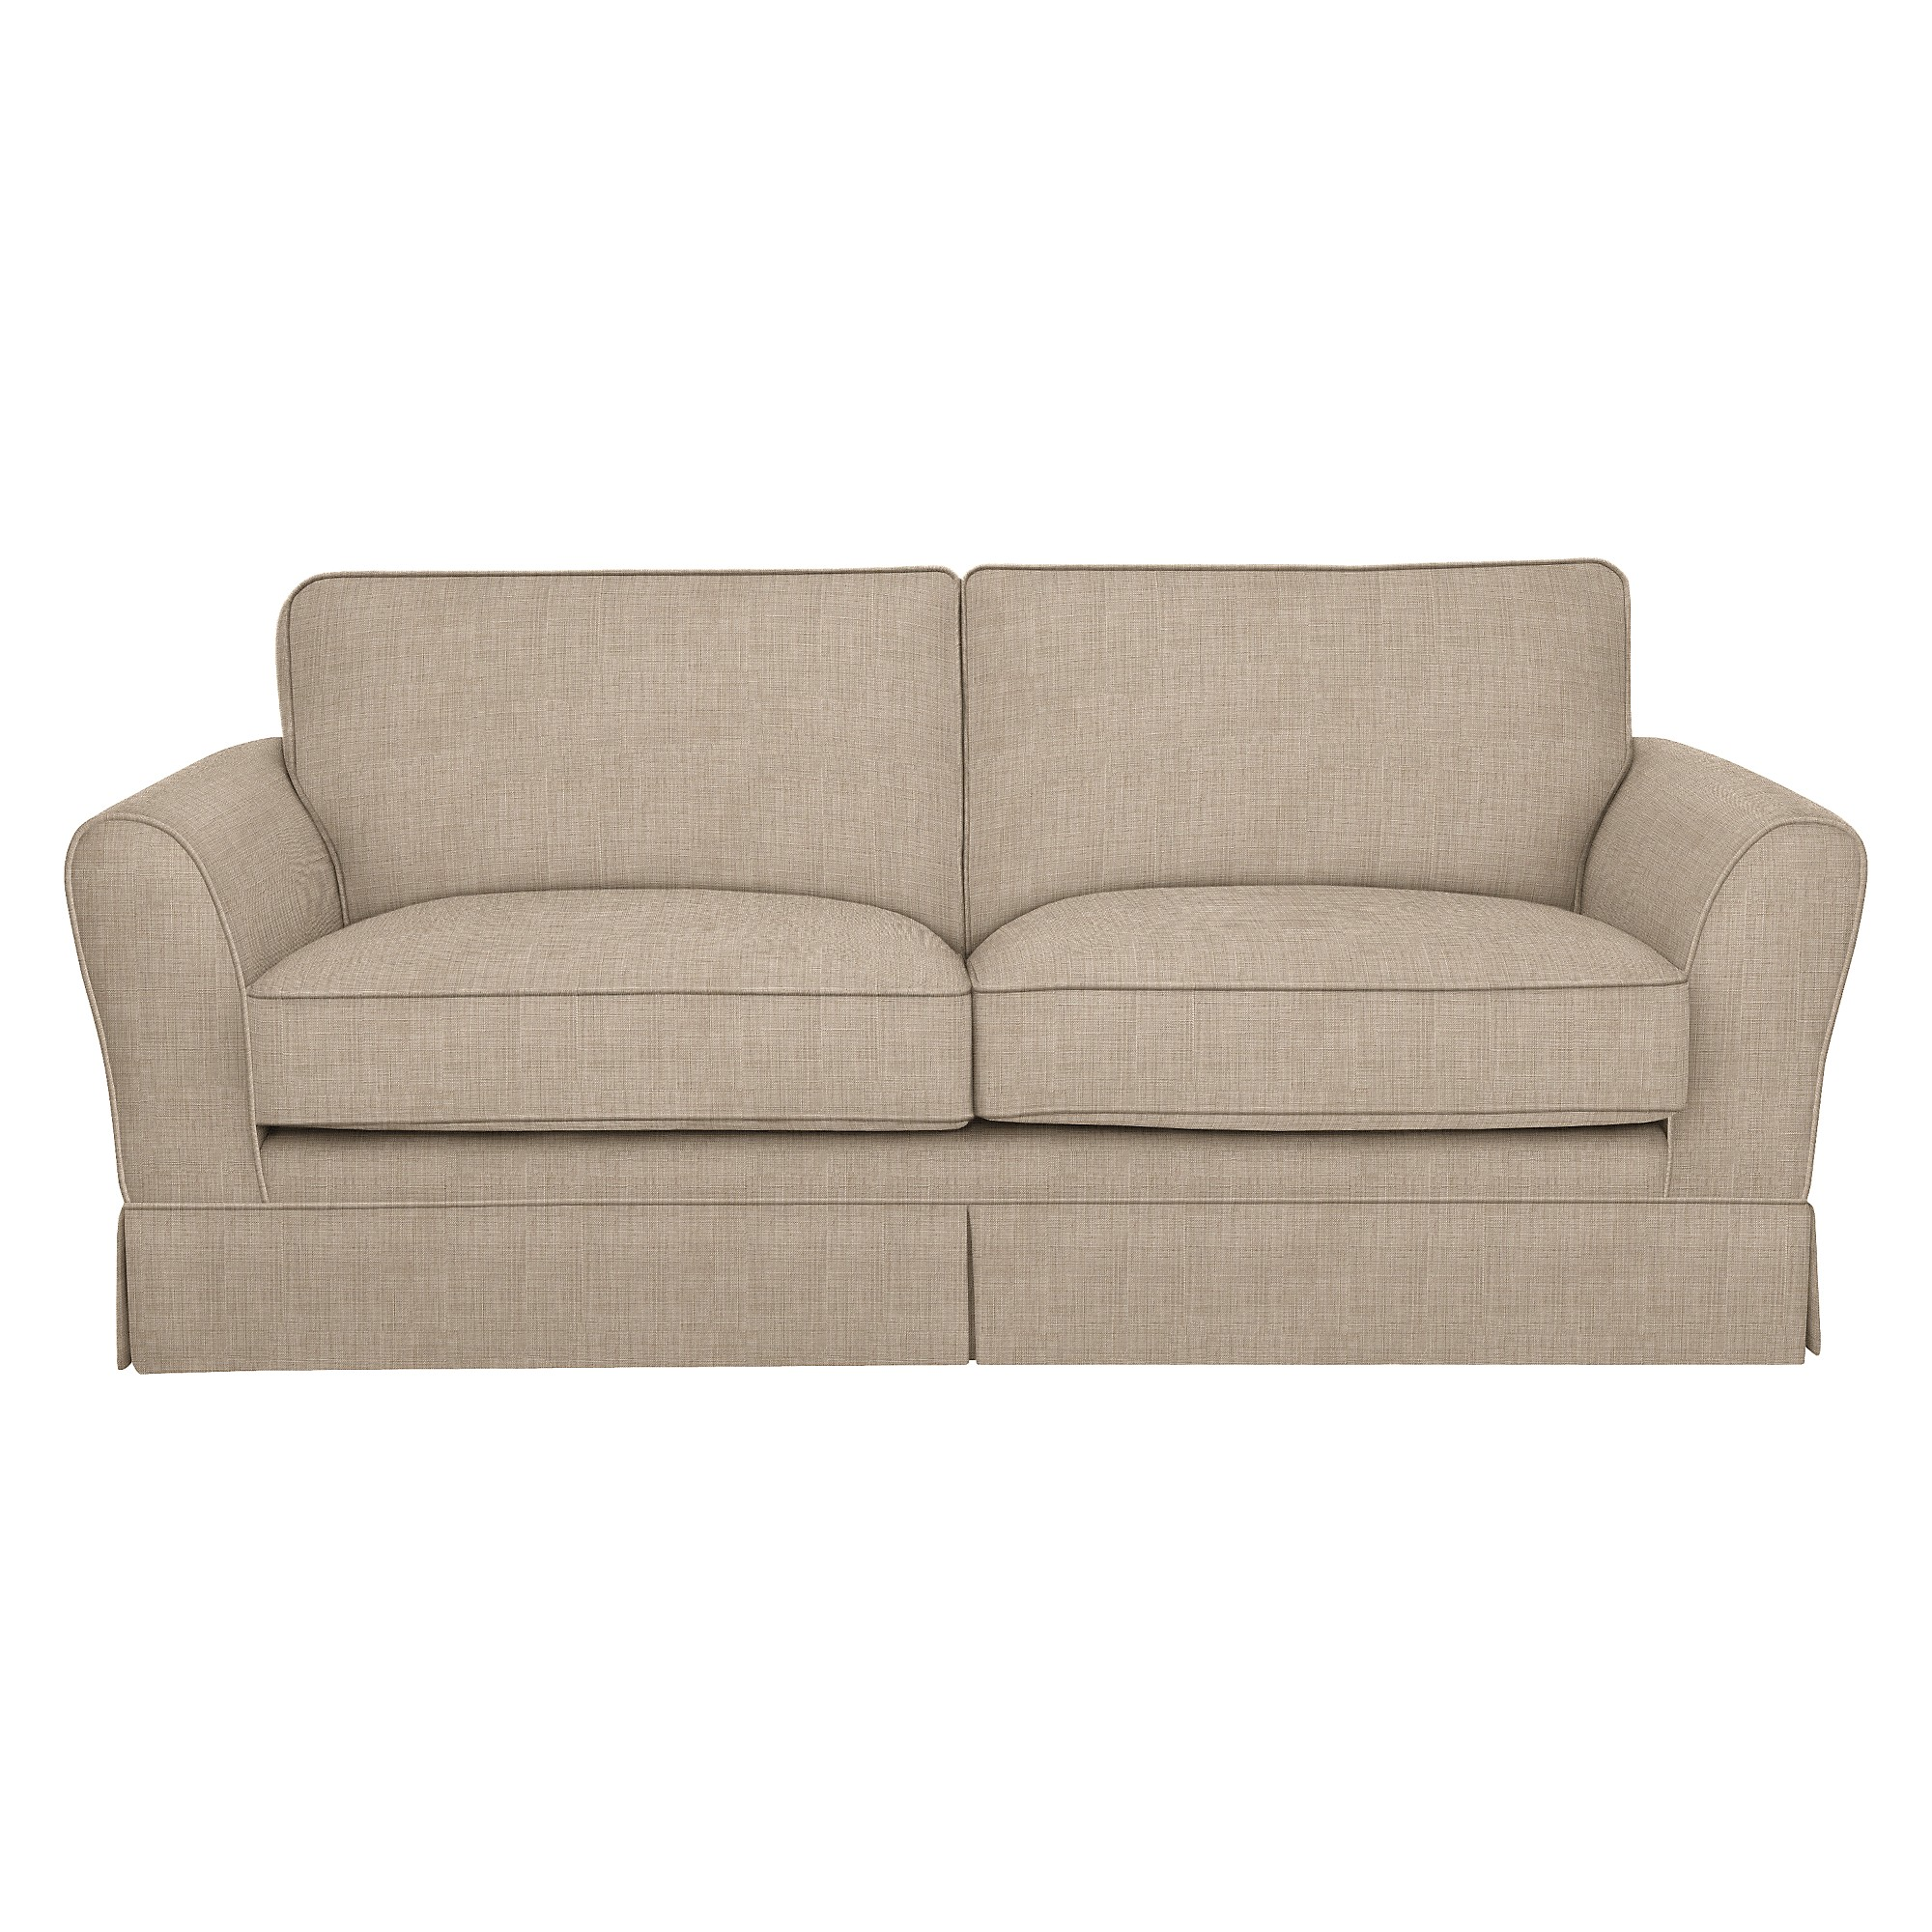 john lewis nelson large sofa fraser putty by john lewis best buy review. Black Bedroom Furniture Sets. Home Design Ideas